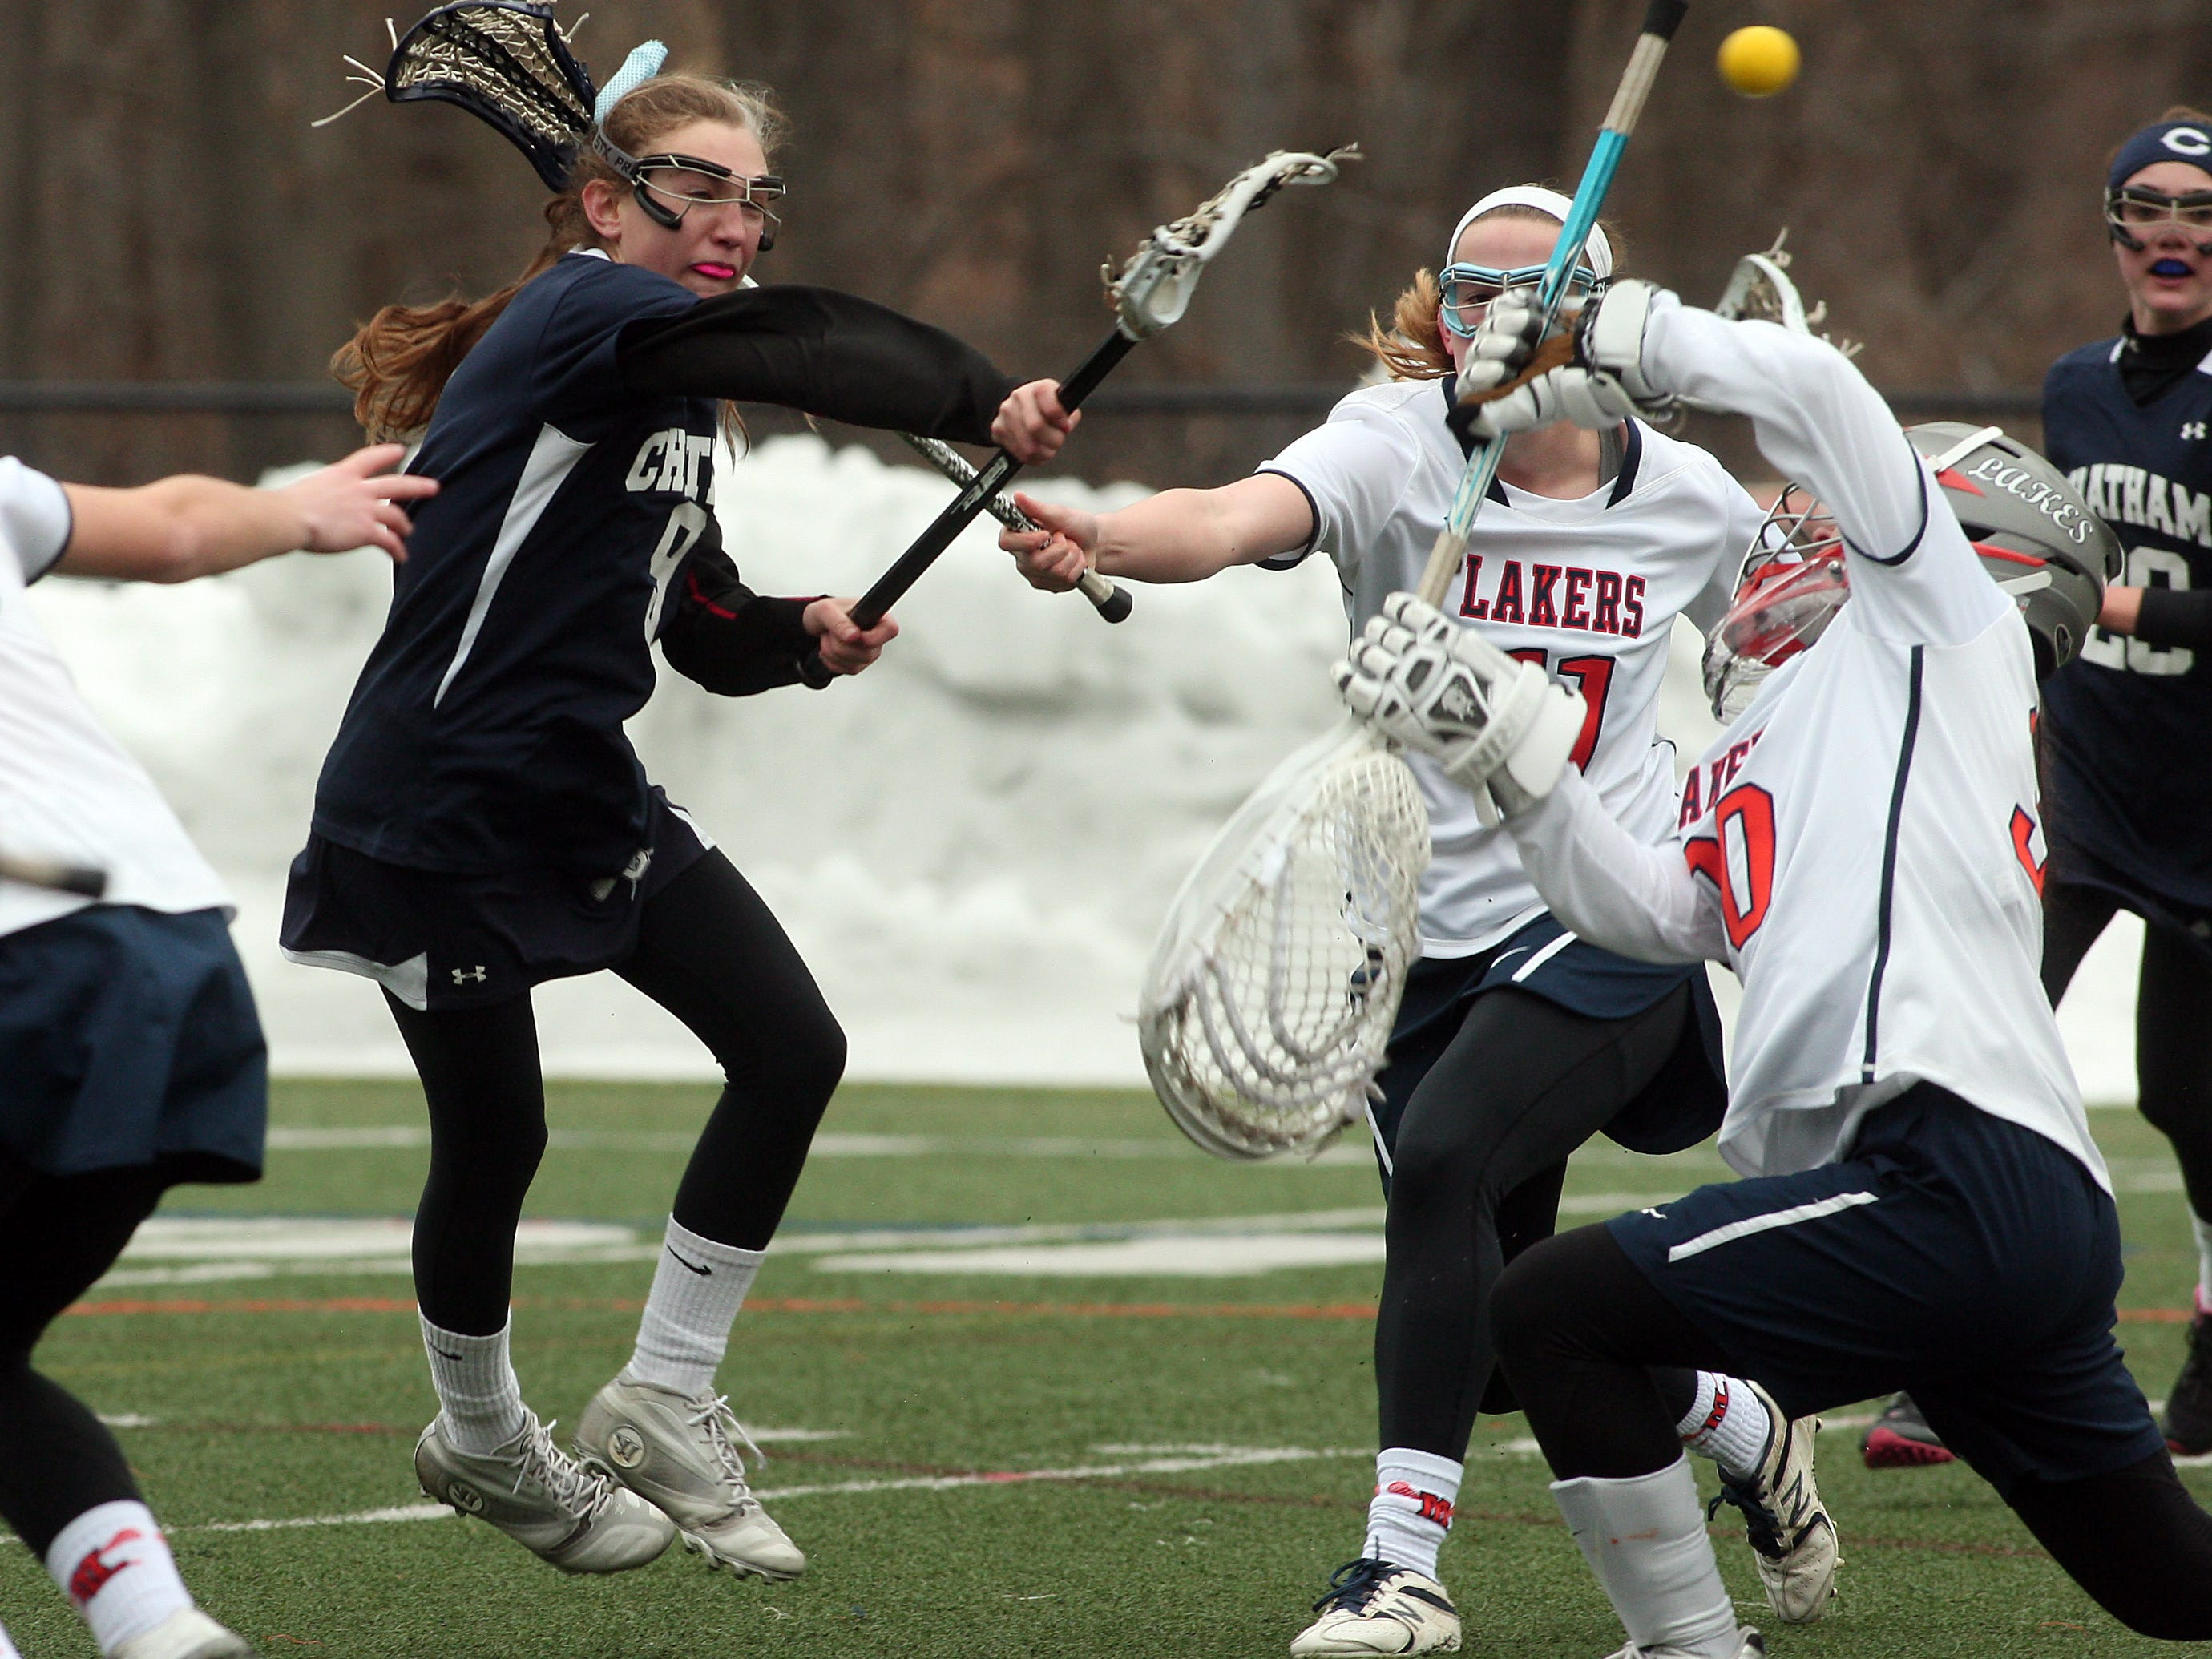 Chatham's Schuyler Bixby shoots and scores against Mountain Lakes on March 25. The two teams will play in the Morris County Tournament final on Saturday.